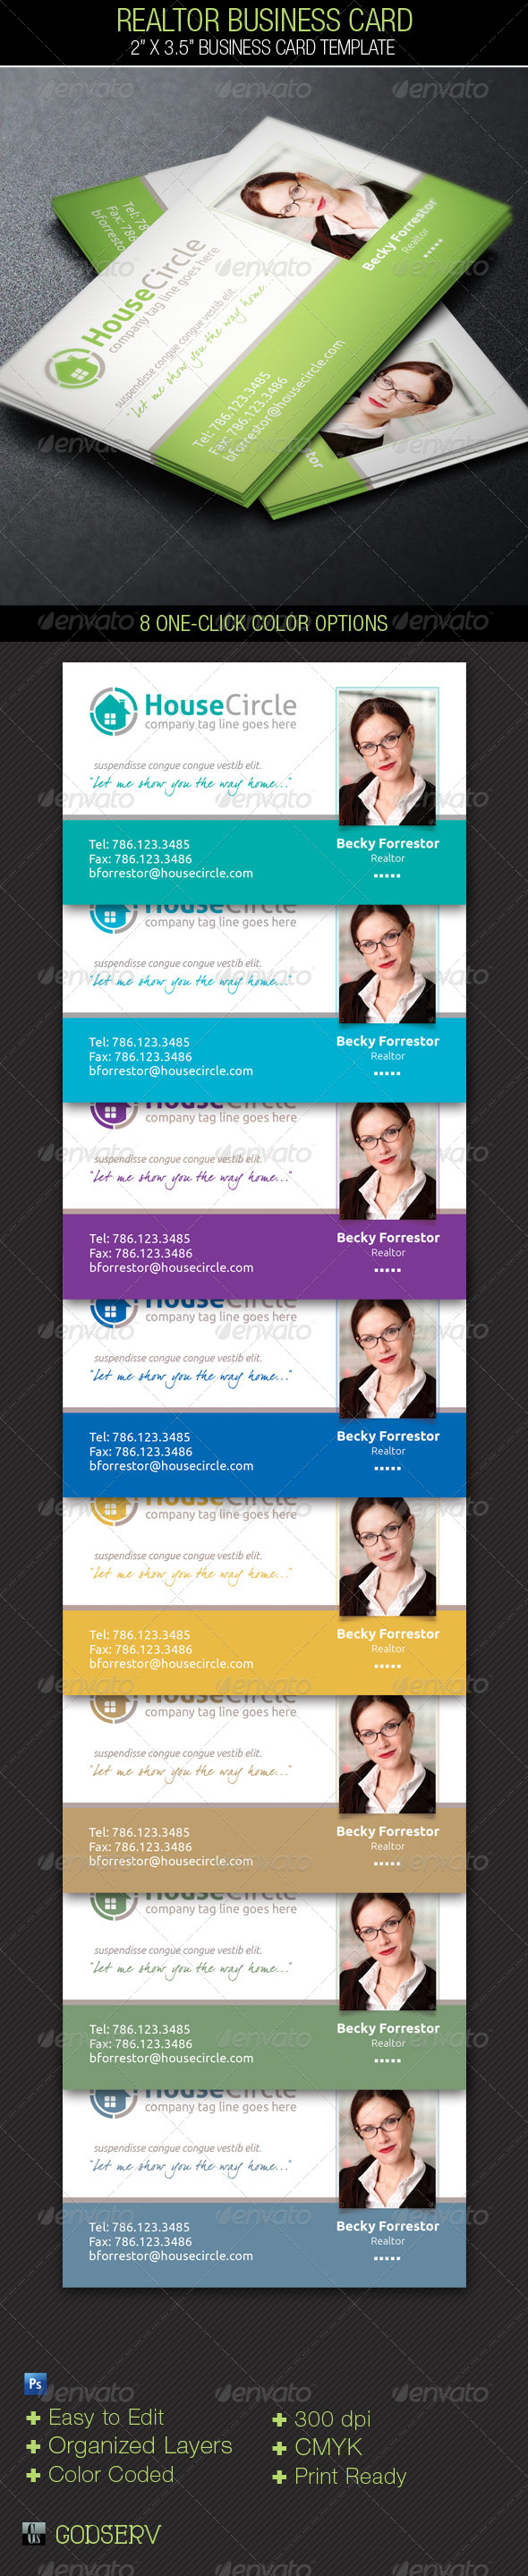 GraphicRiver Realtor Business Card Template 4964038